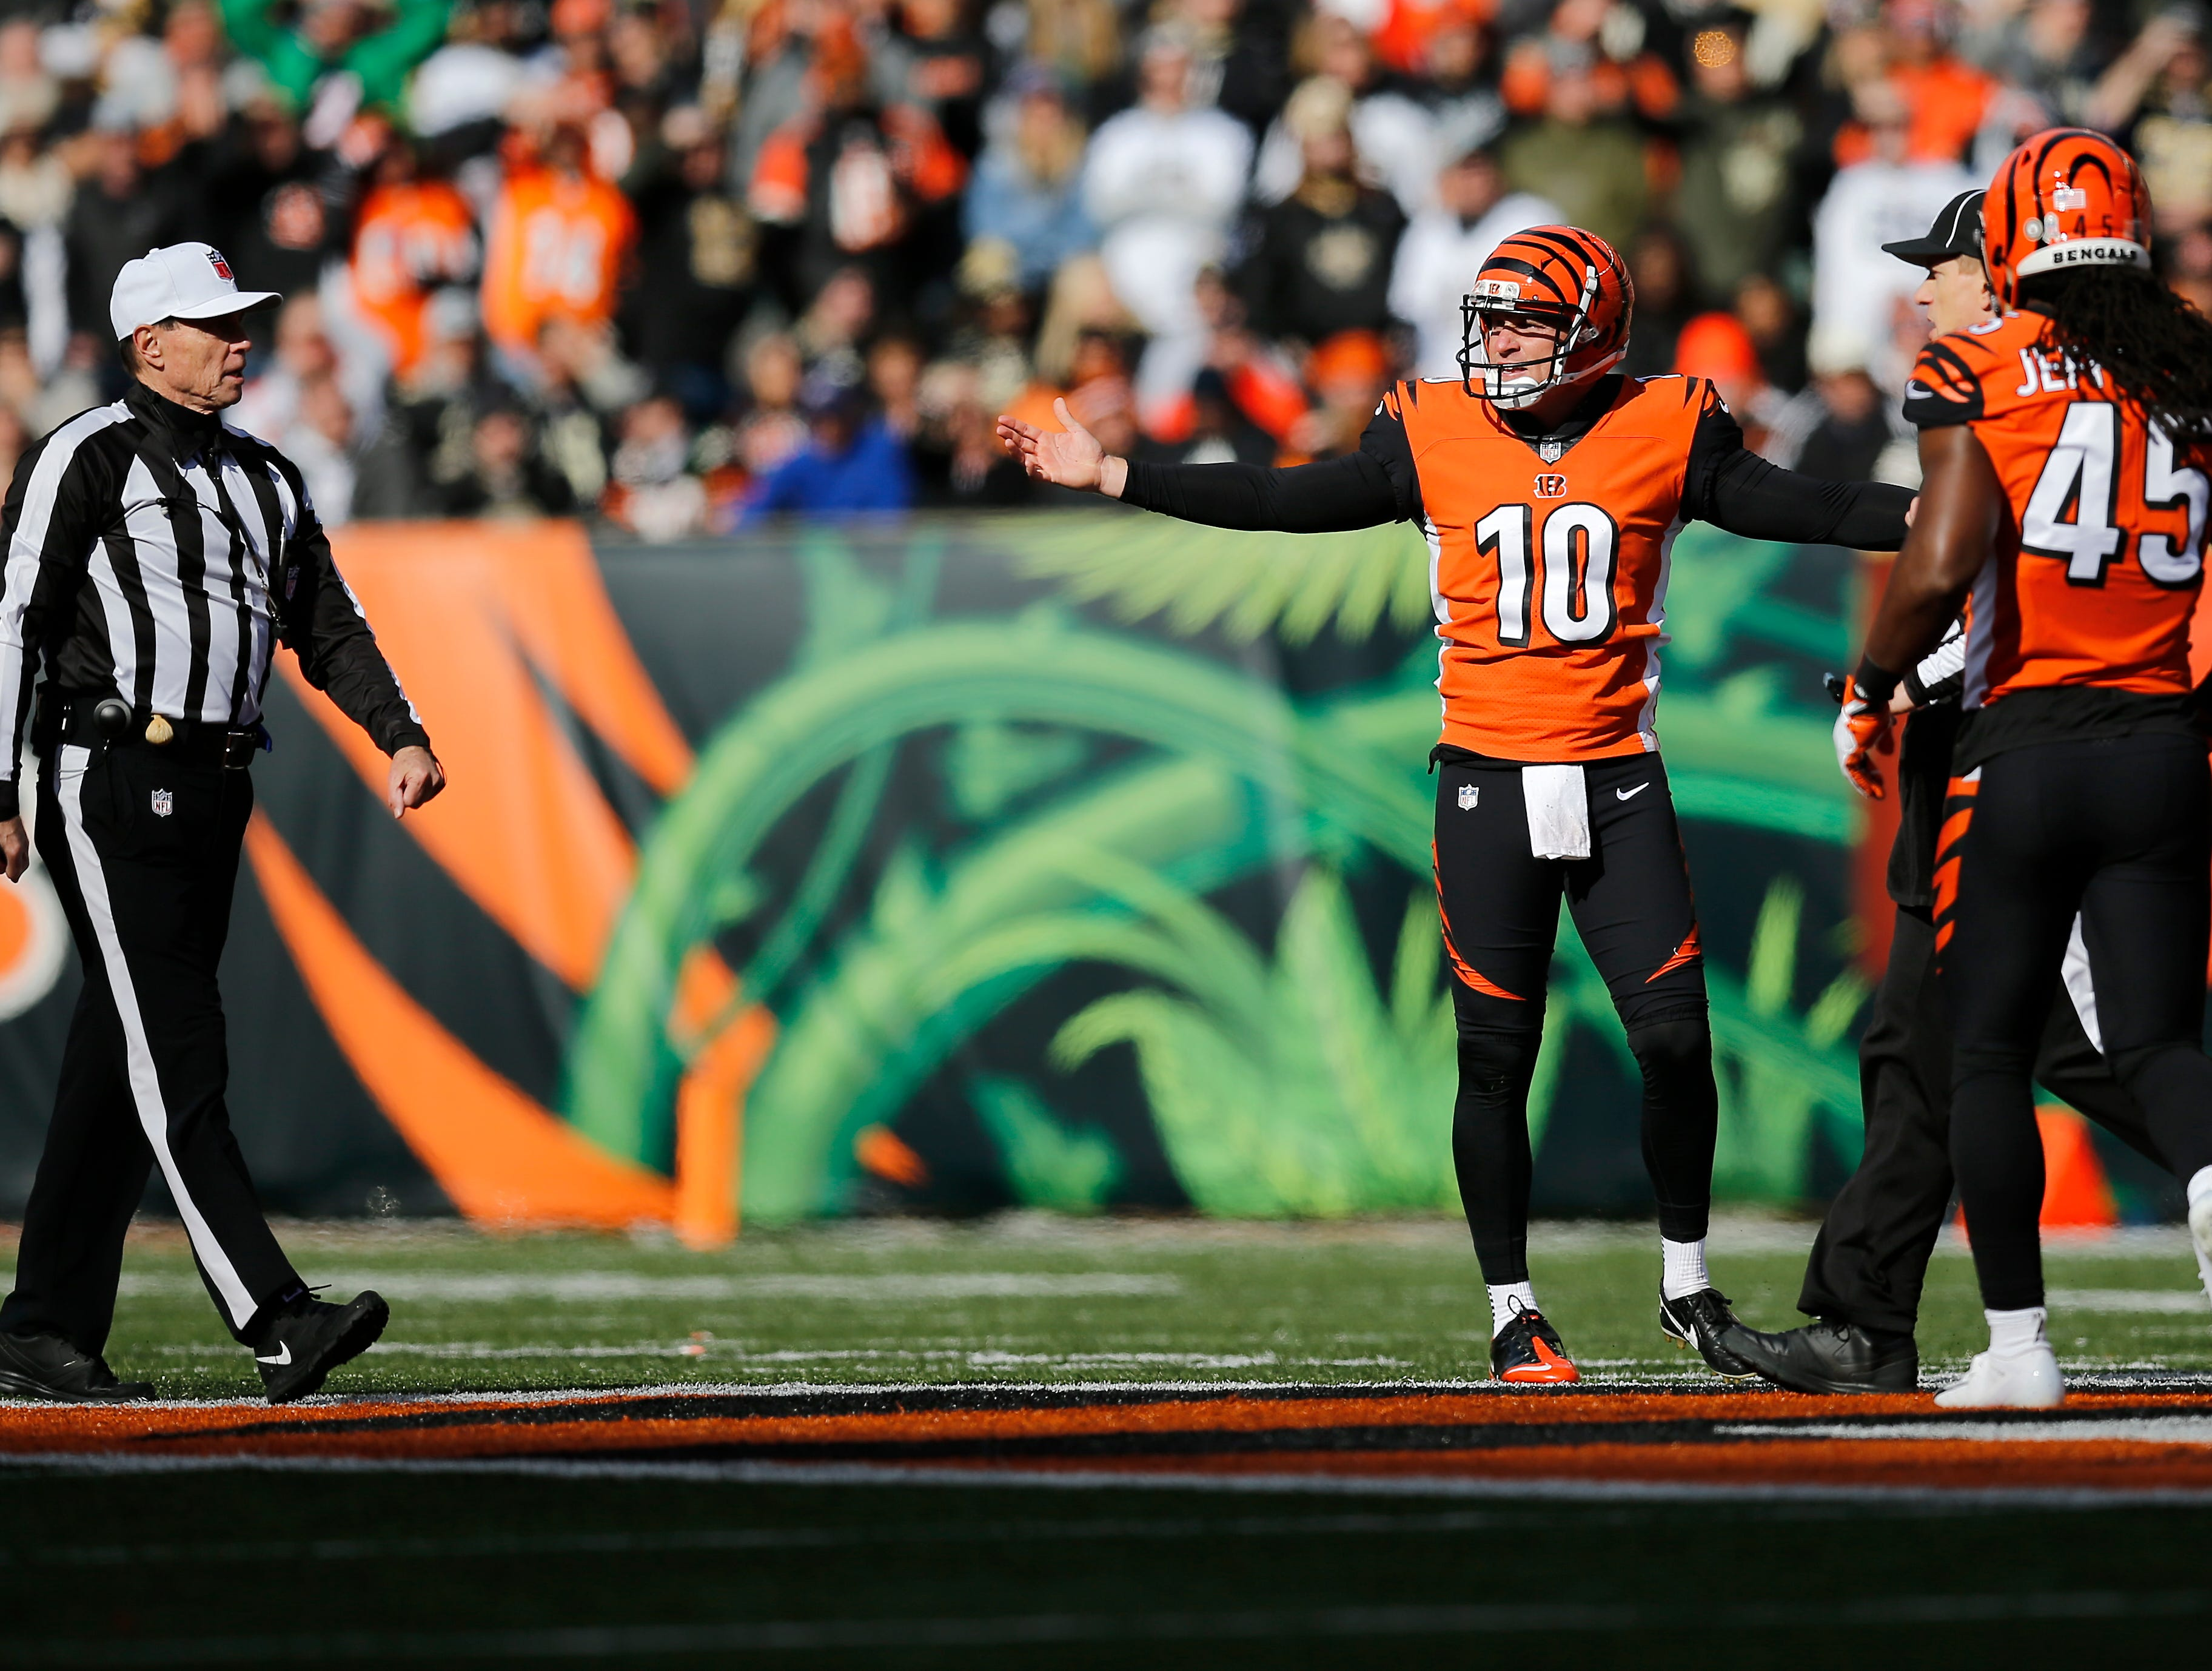 Cincinnati Bengals punter Kevin Huber (10) appeals to an official for a penalty after being hit on a punt in the second quarter of the NFL Week 10 game between the Cincinnati Bengals and the New Orleans Saints at Paul Brown Stadium in downtown Cincinnati on Sunday, Nov. 11, 2018. The Saints led 35-7 at halftime.